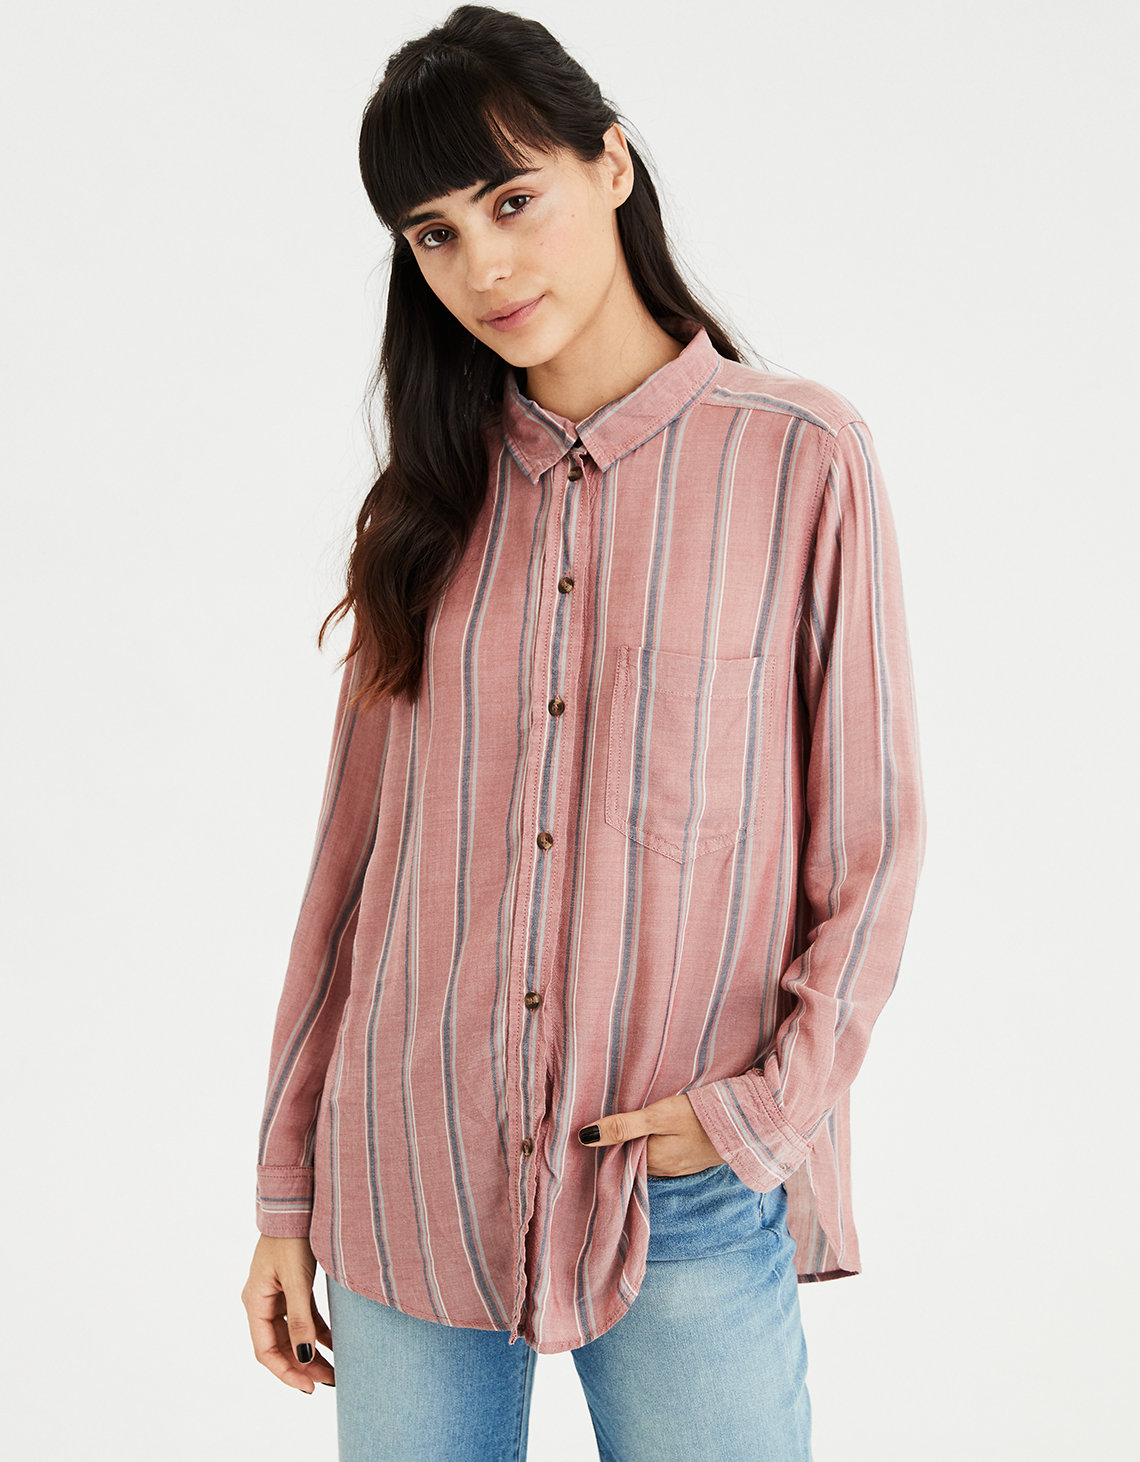 e3b412971b8 AE Striped Tie Front Top